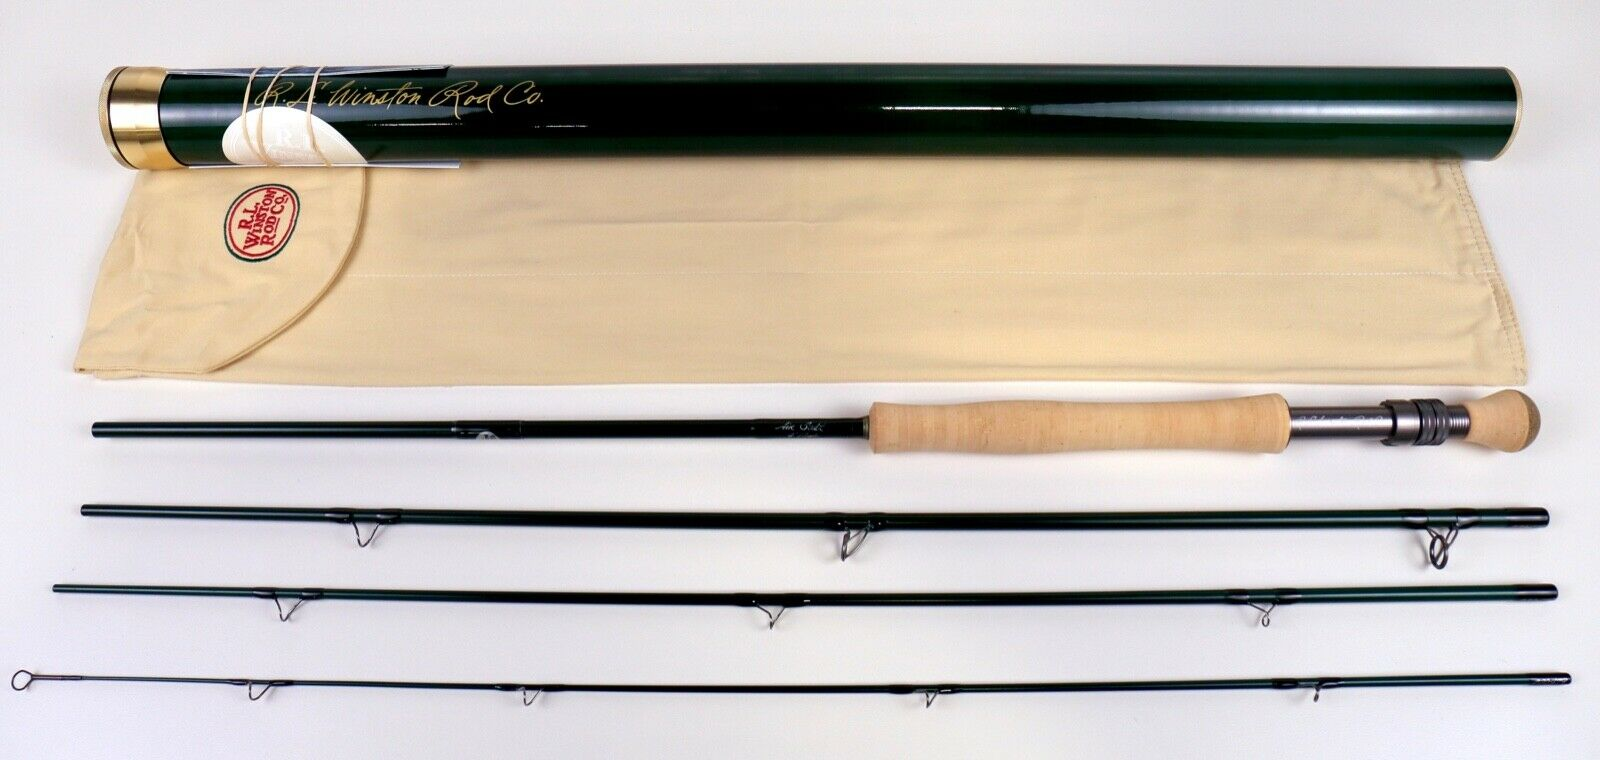 R L Winston 9' 6 WT Air Salt Fly Rod Free  130 Line Fast Free Shipping